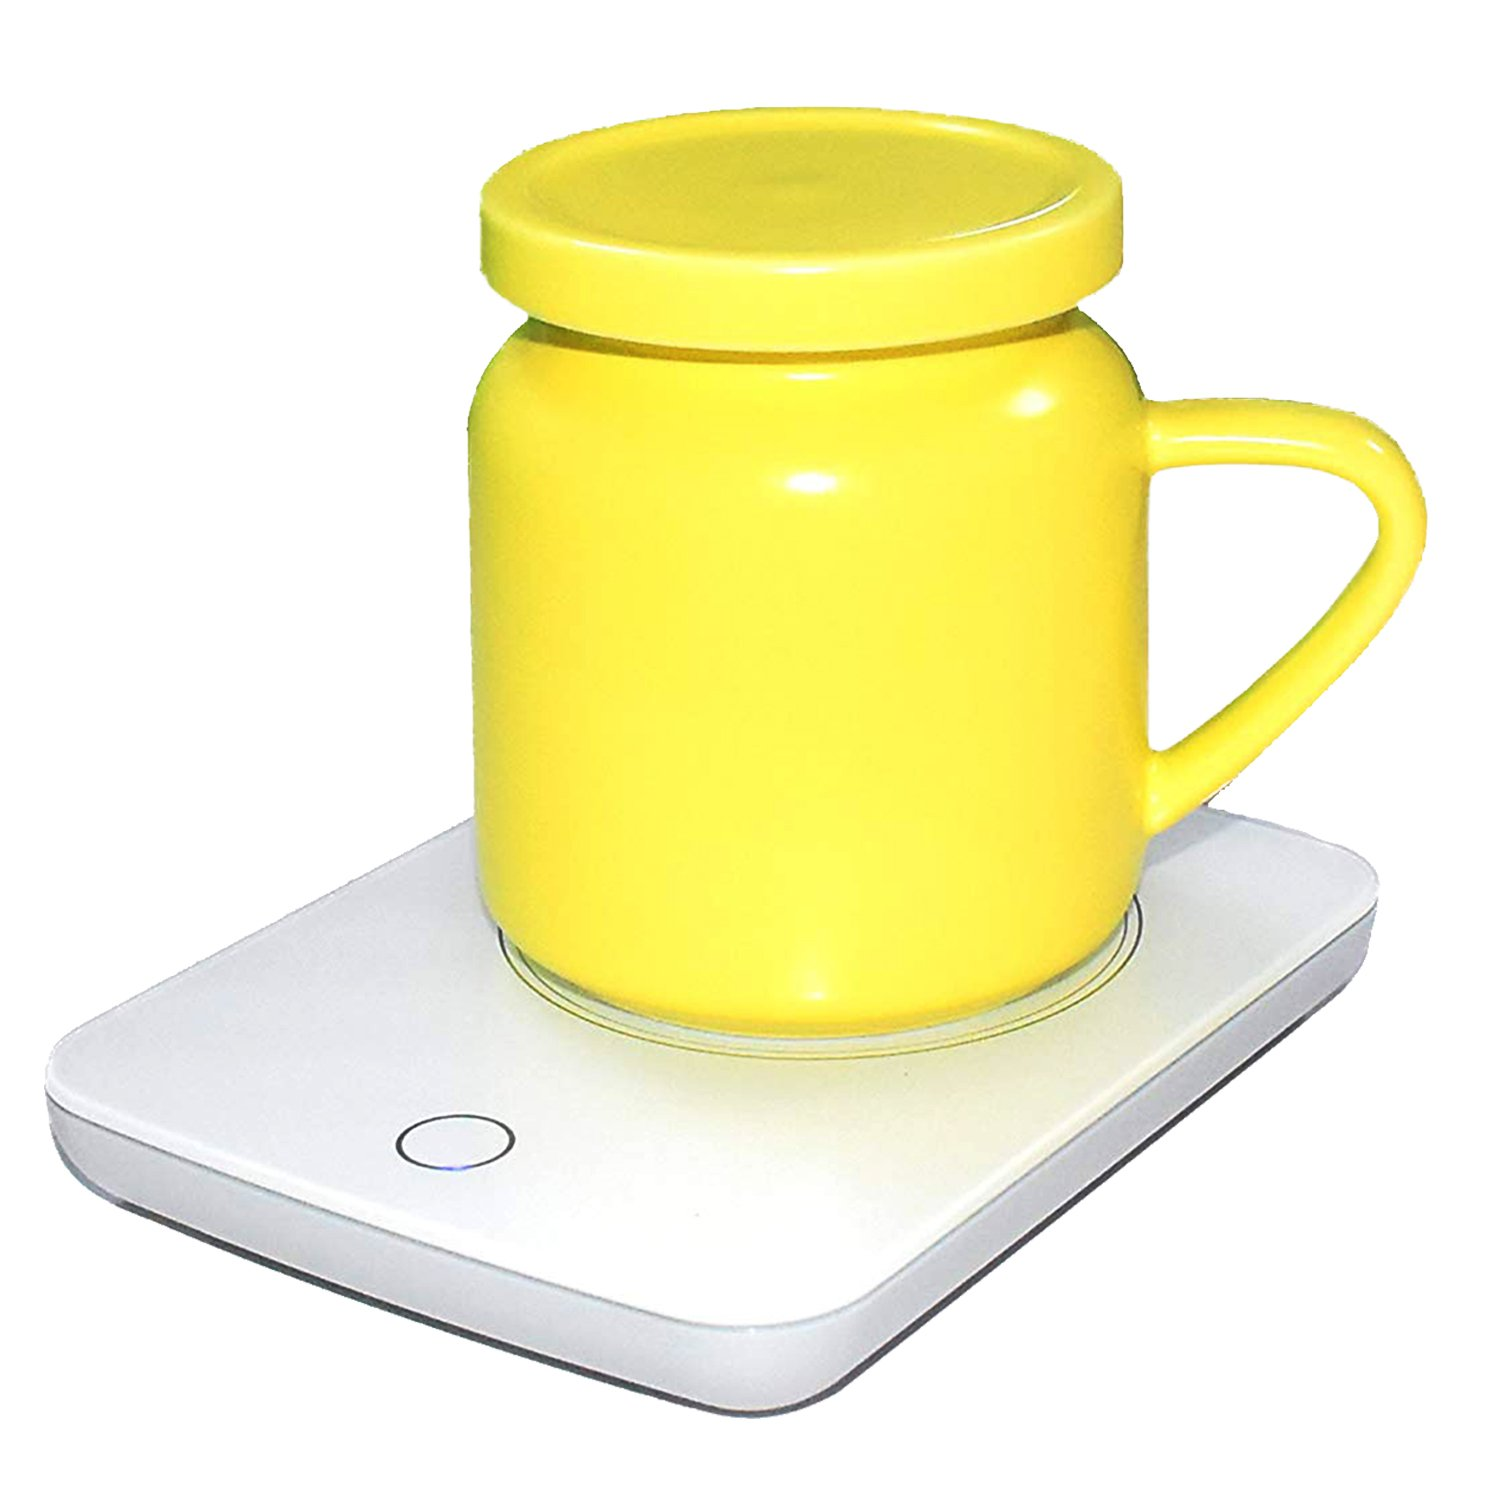 Coffee Mug Warmer For Desk Auto Shut Off Beverage Warmer-(Up to 131F℉/55℃) for Home & Office Use (with Yellow Ceramic Mug) Nicelucky